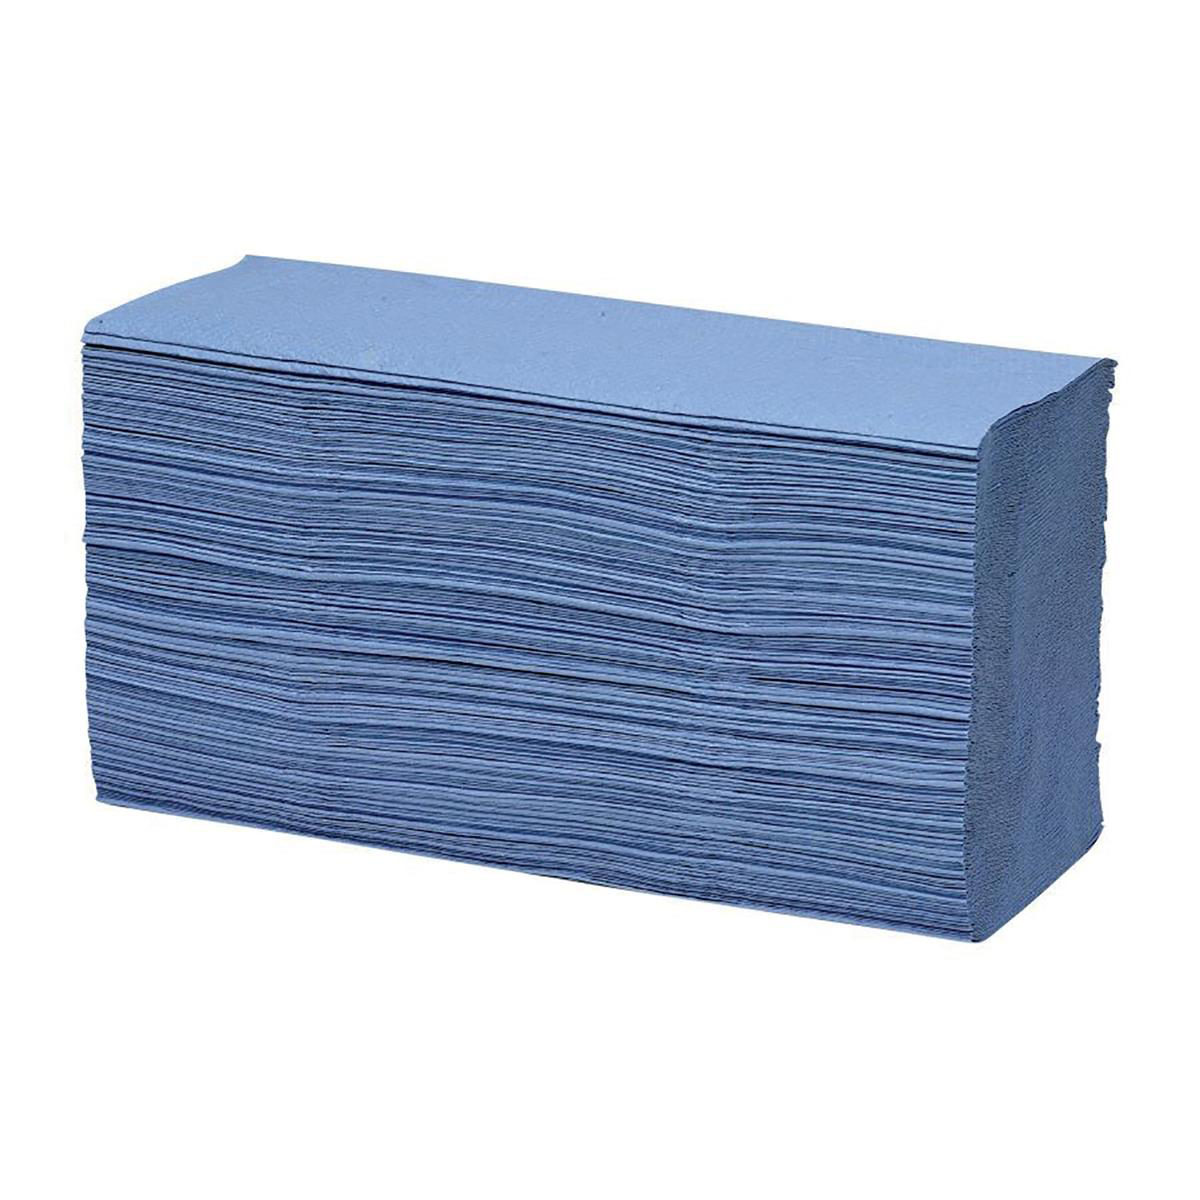 Maxima Hand Towels Z-Fold Blue 1-Ply 100% recycled 200 Sheets Per Sleeve Ref 1104063 15 Sleeves